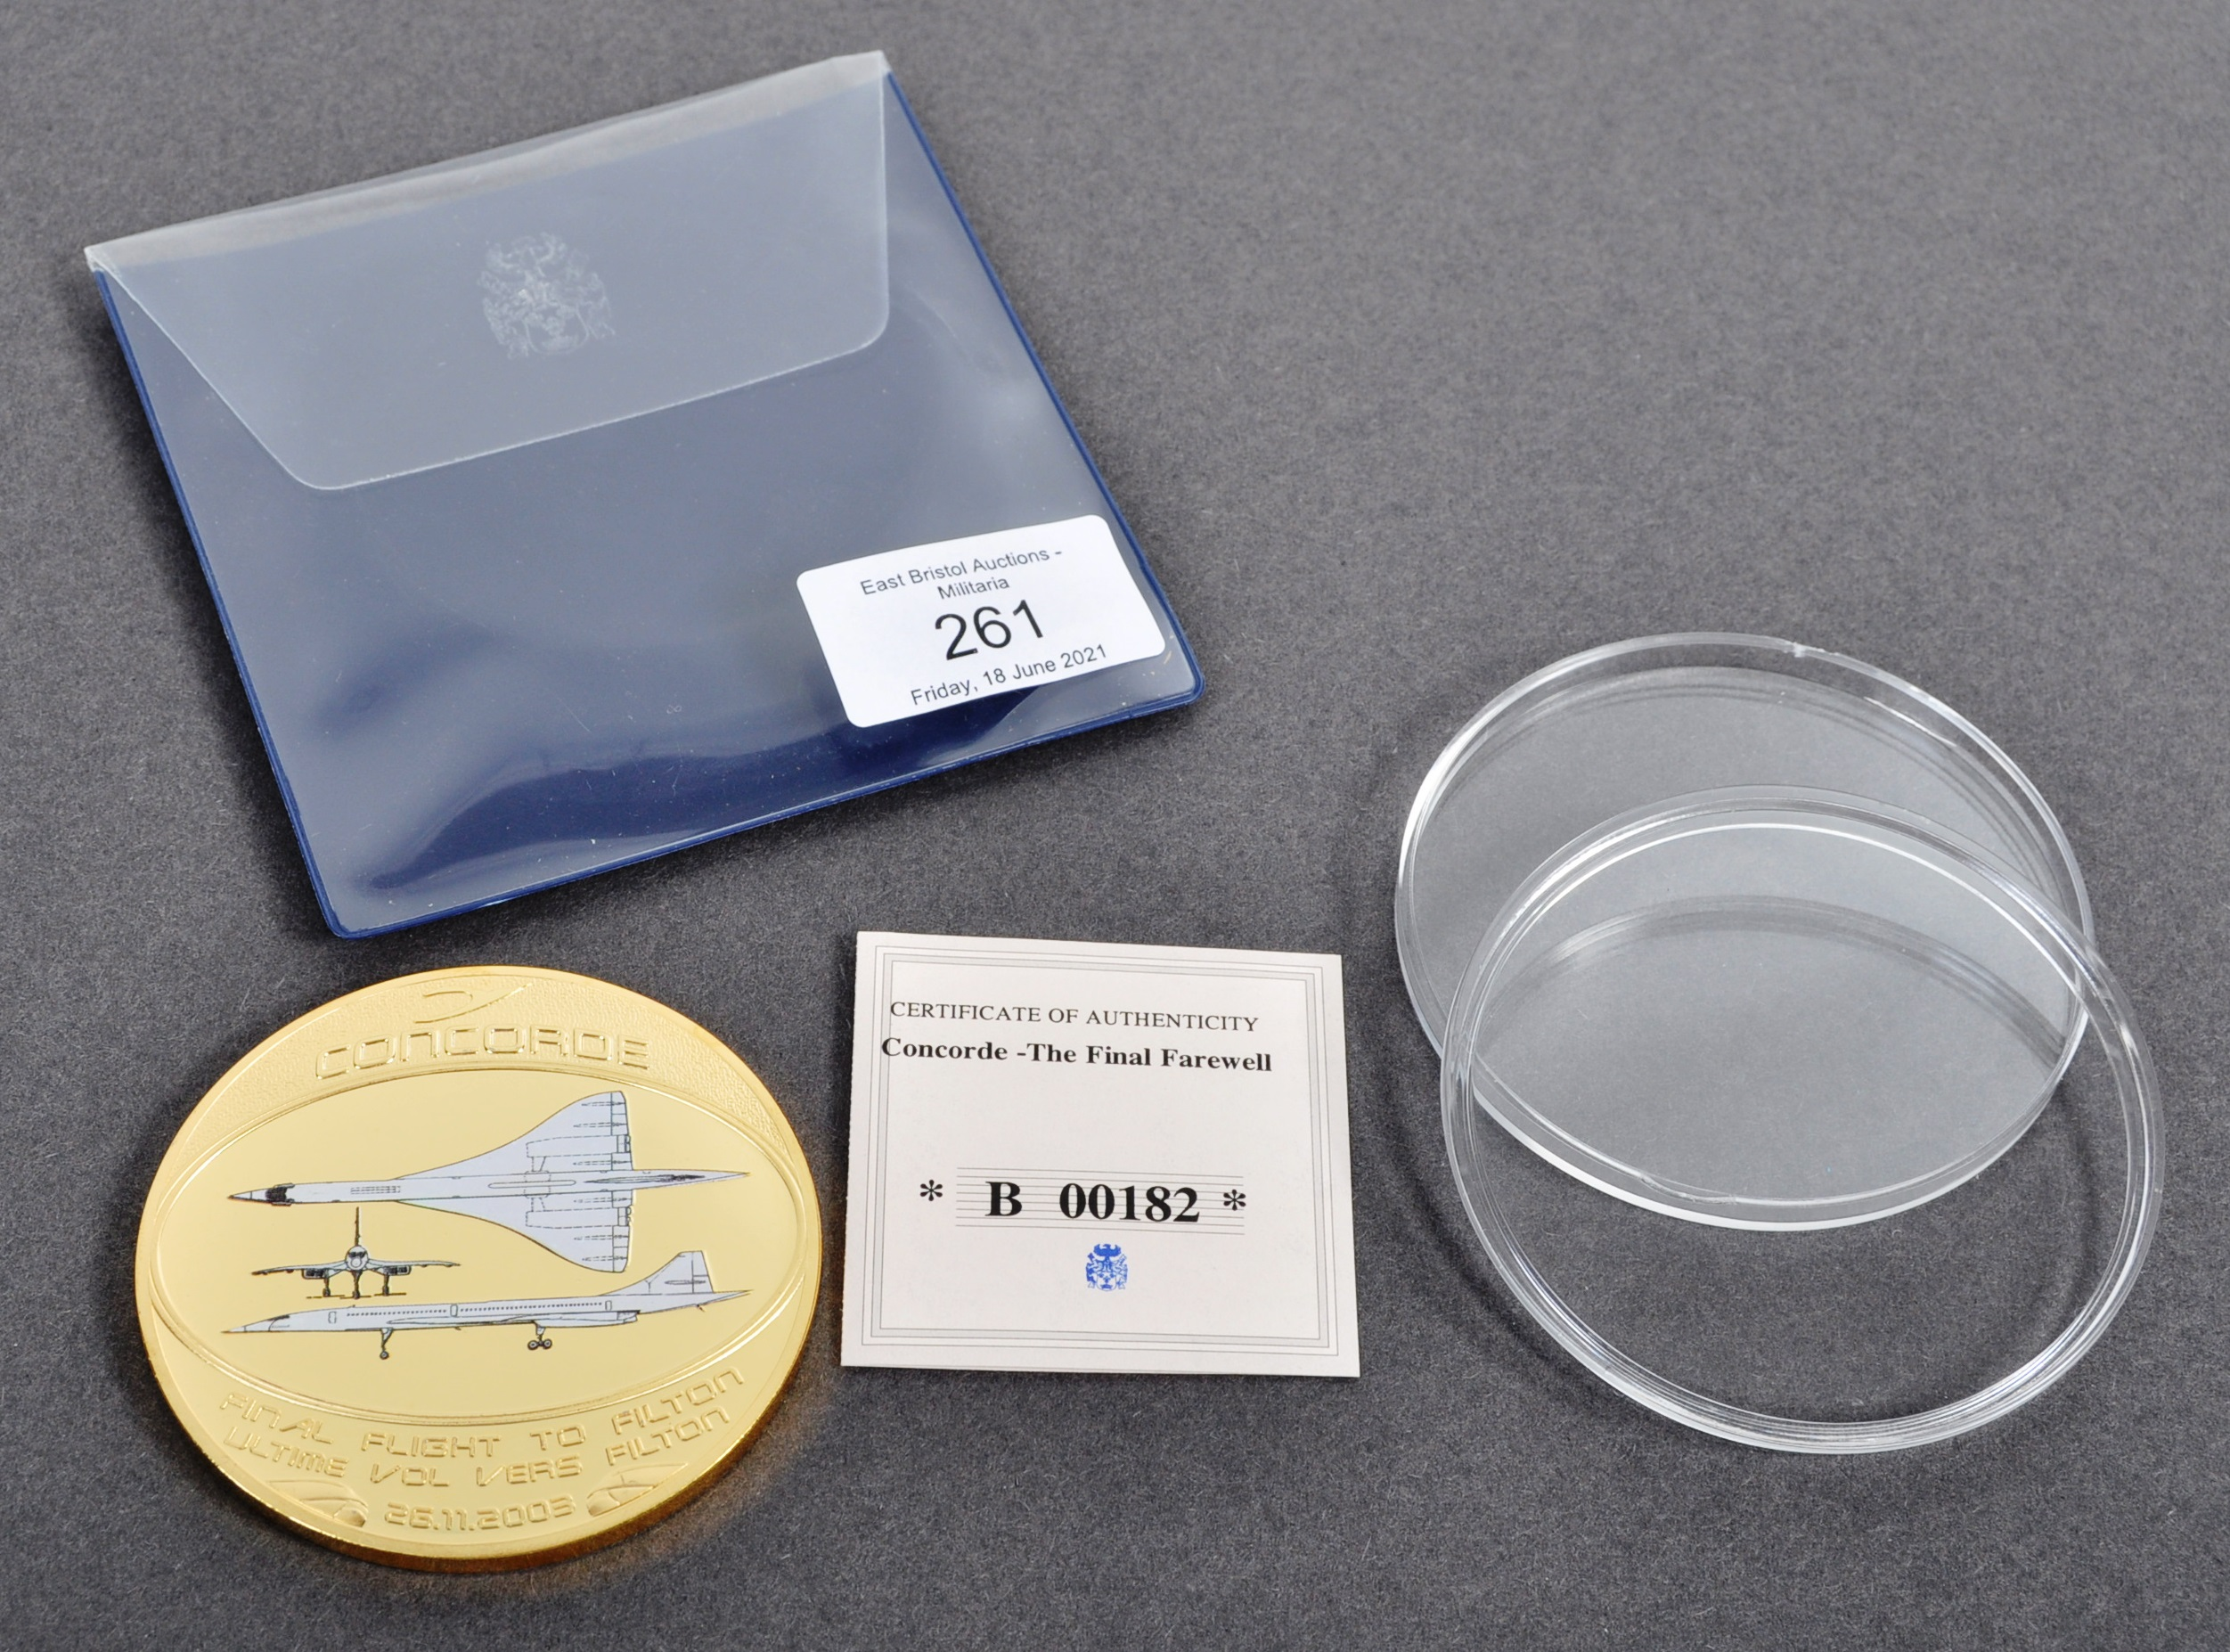 LIMITED EDITION CONCORDE FINAL FLIGHT COMMEMORATIVE MEDAL - Image 5 of 5